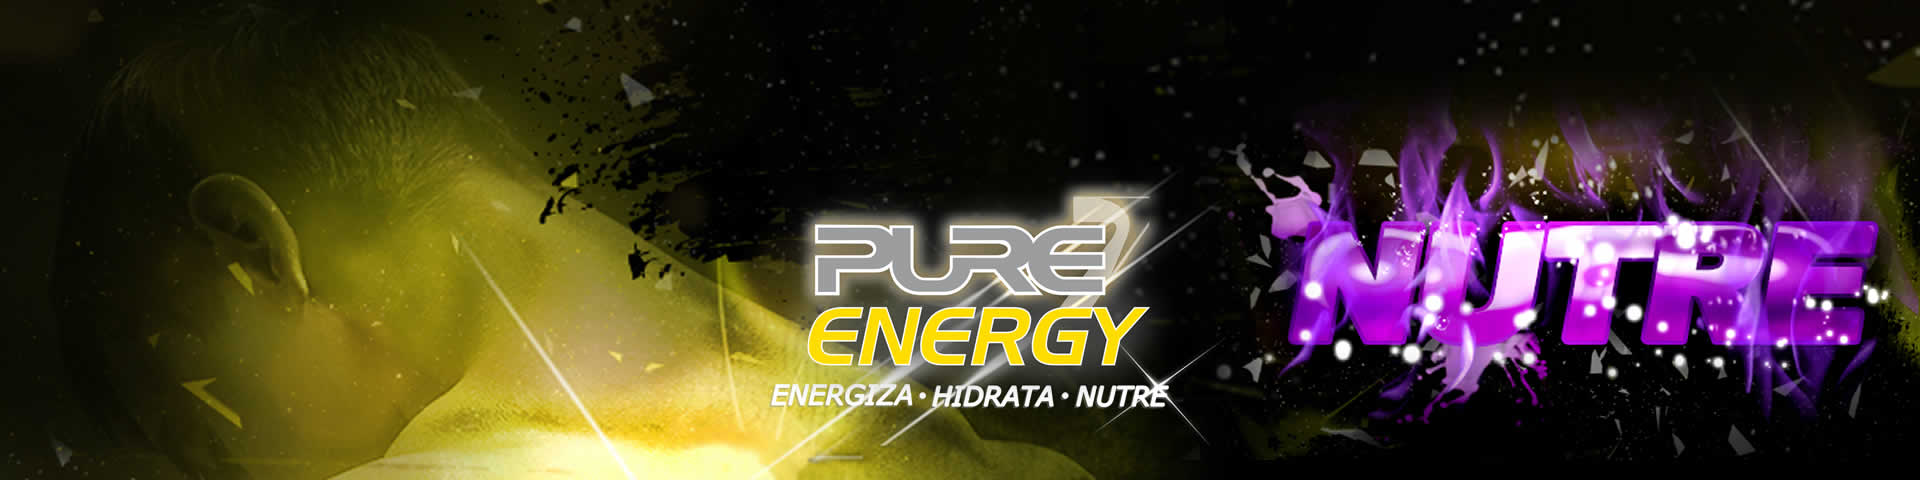 banner-pure-energy-nutre